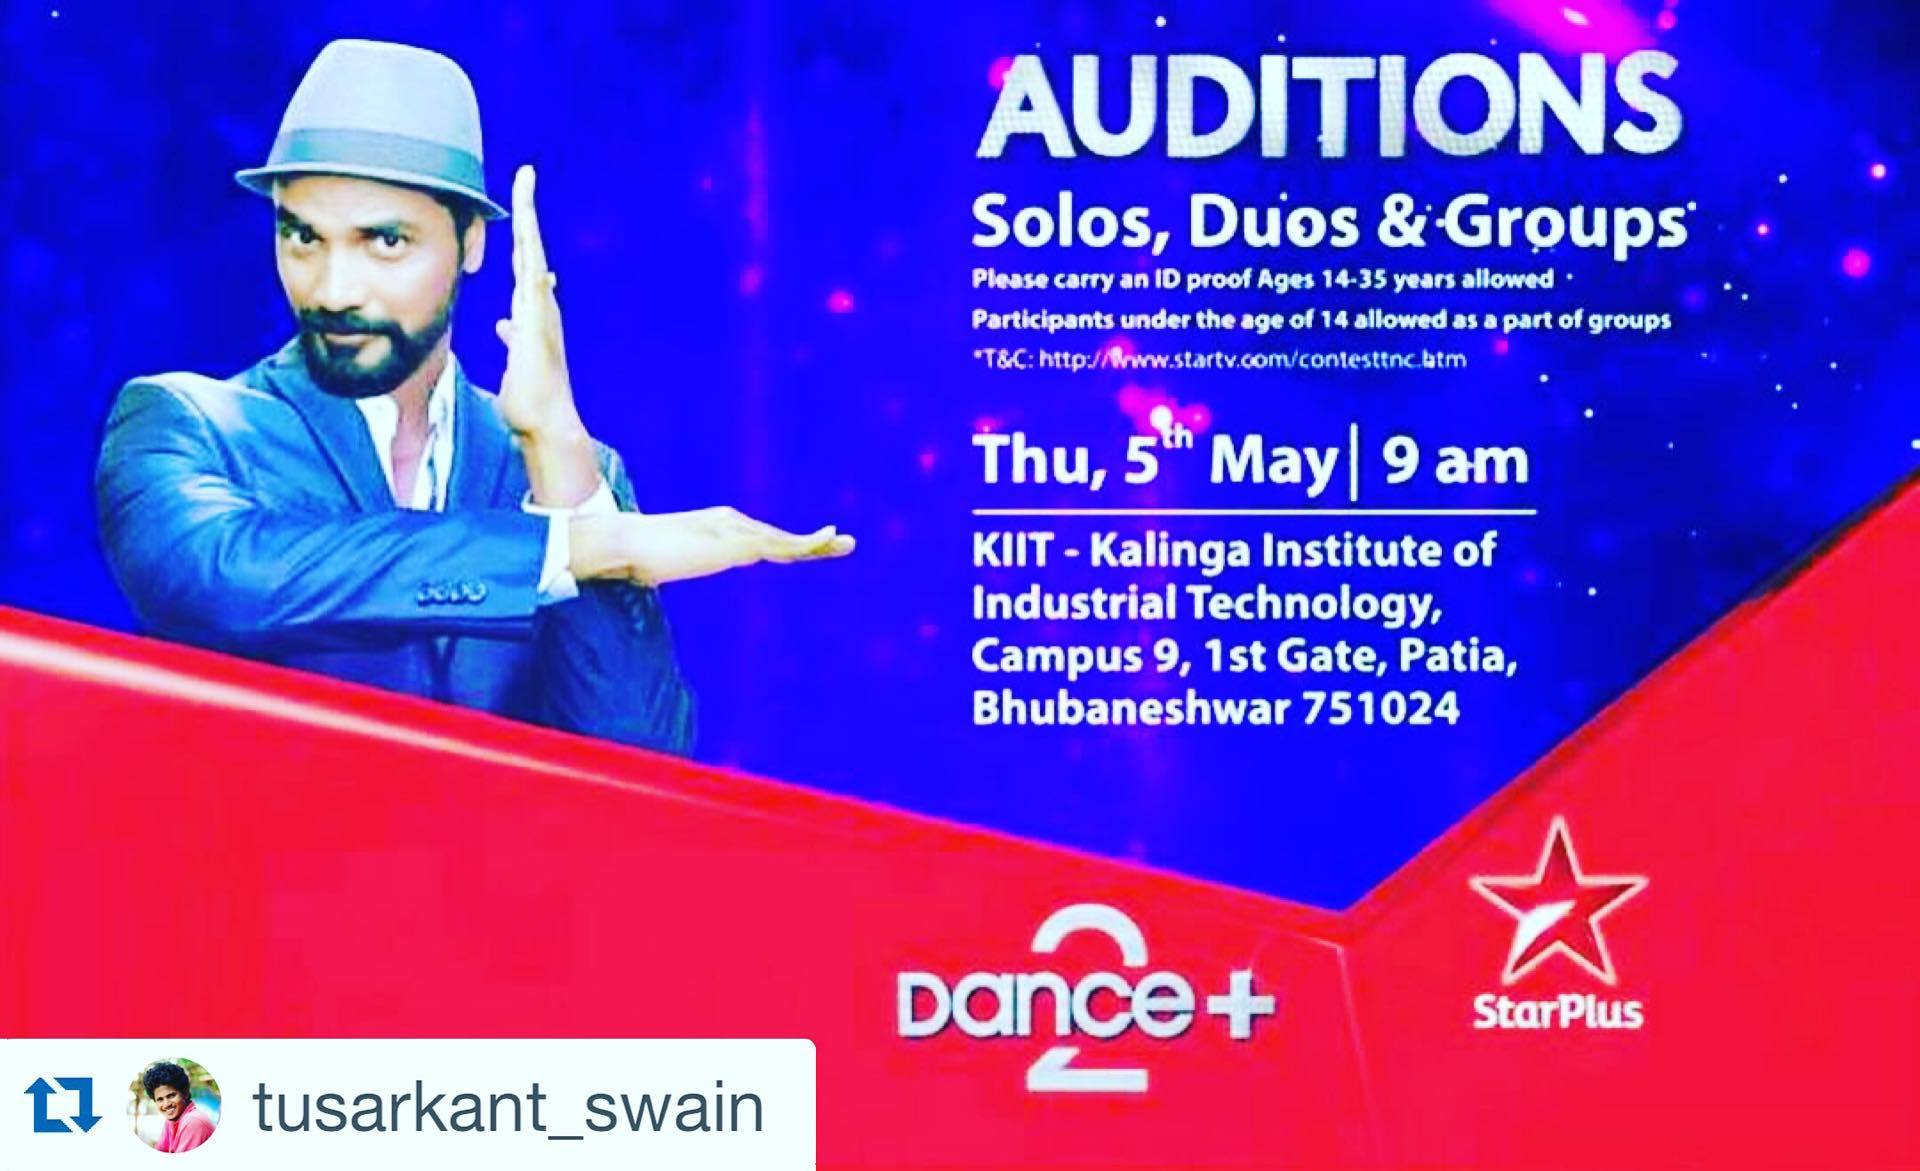 Star plus Dance plus audition bhubaneswar buzz2